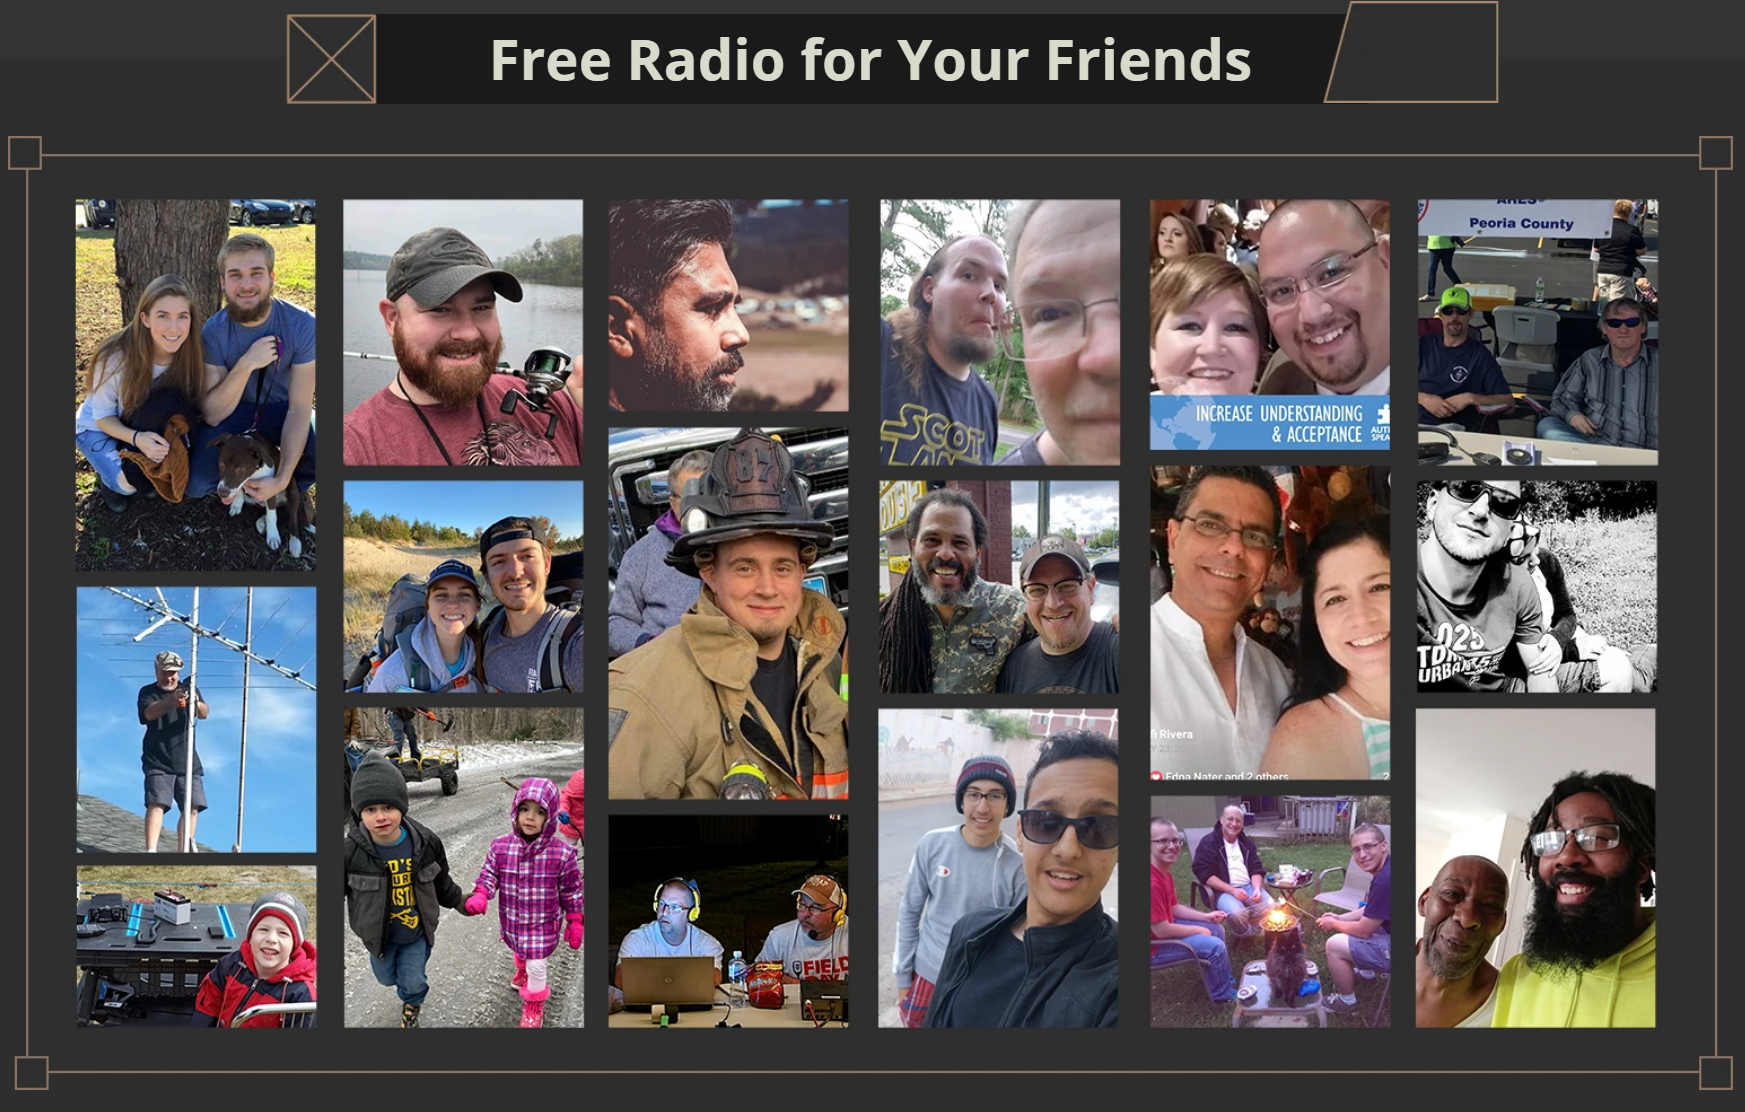 FREE-RADIO-FOR-YOUR-FRIEND.png